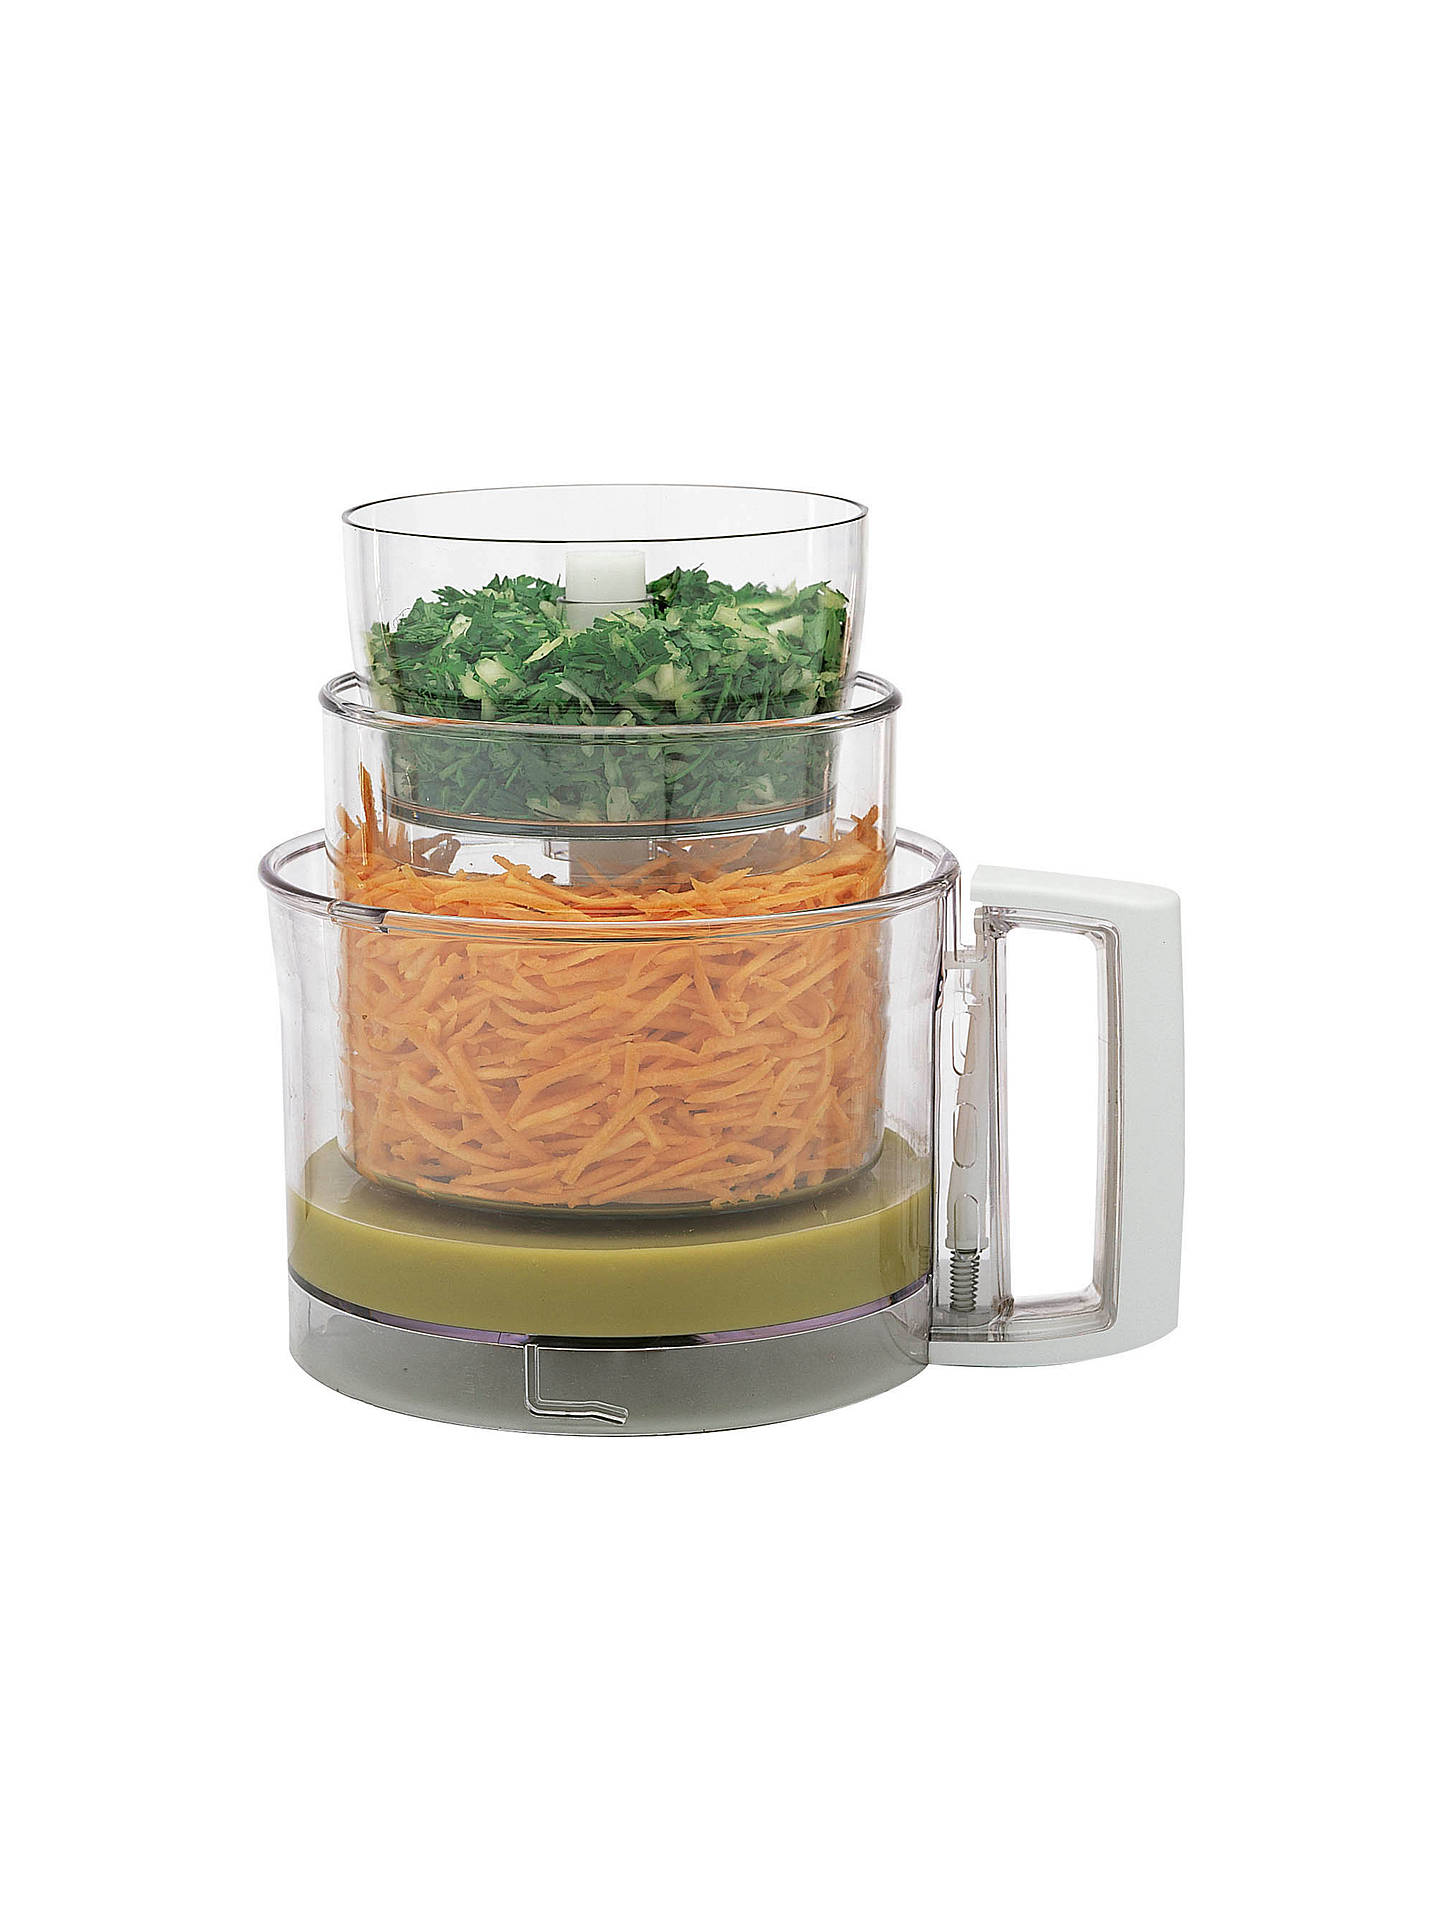 Buy Magimix Compact 3200 Food Processor, White Online at johnlewis.com